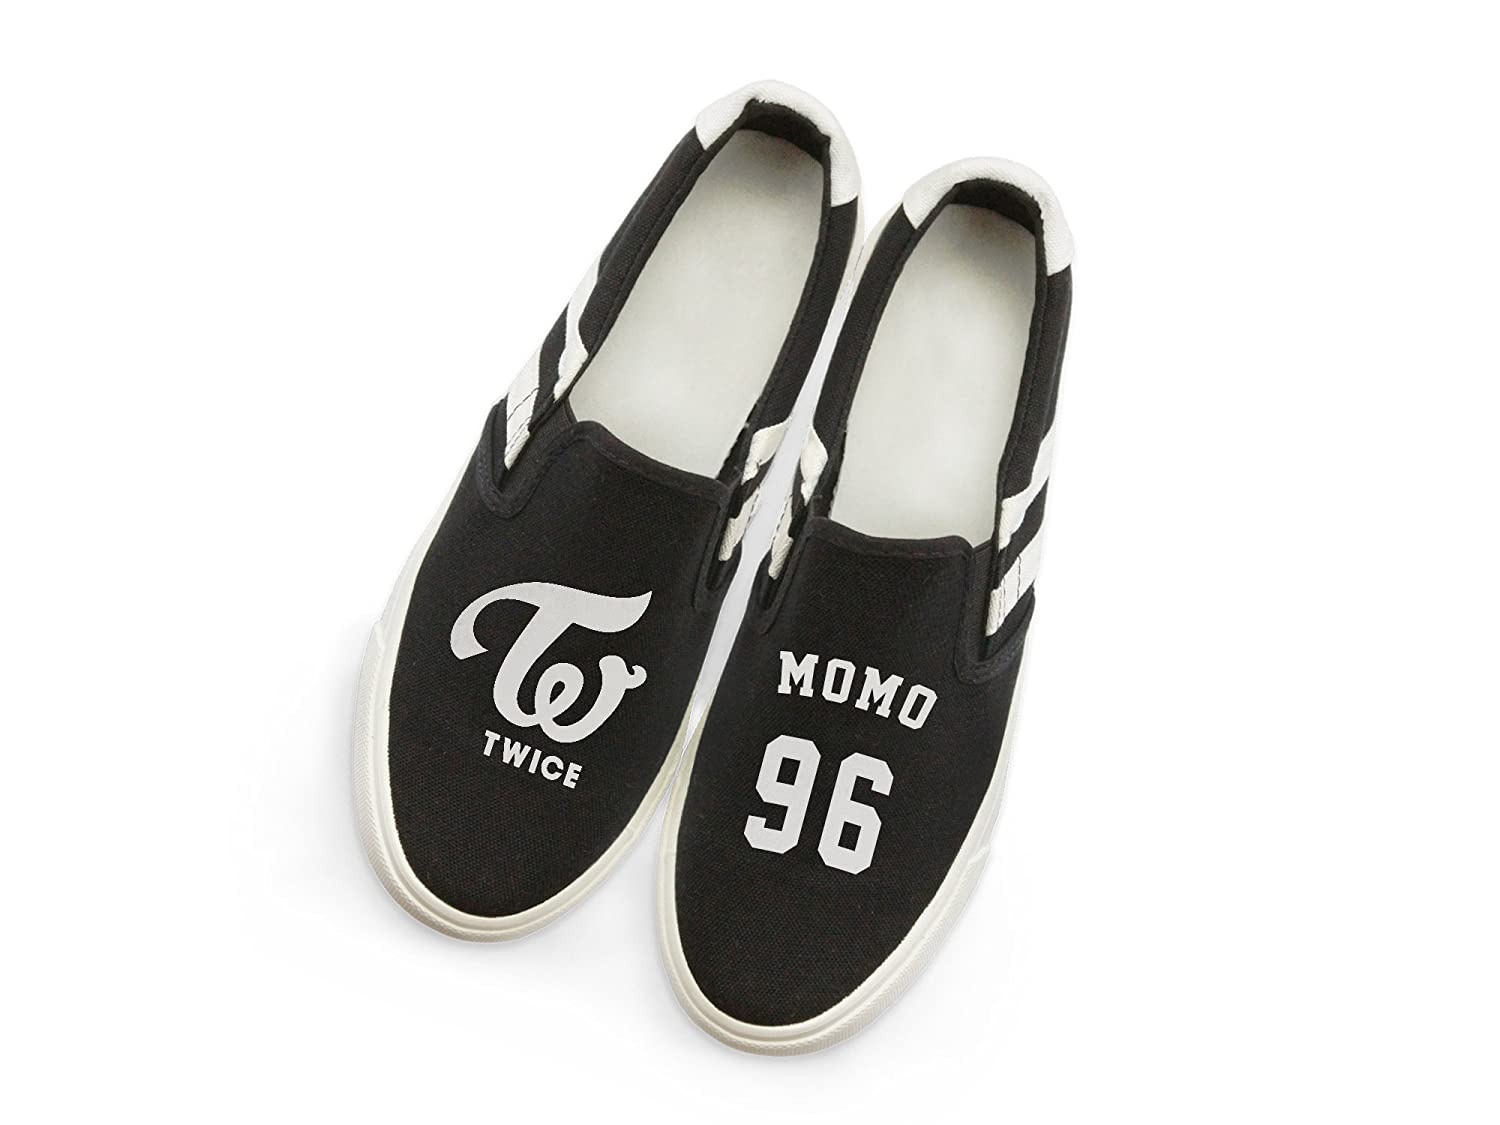 Fanstown Kpop Twice Sneakers Canvas Shoes Fanshion Memeber Hiphop Style Fan Support with lomo Card